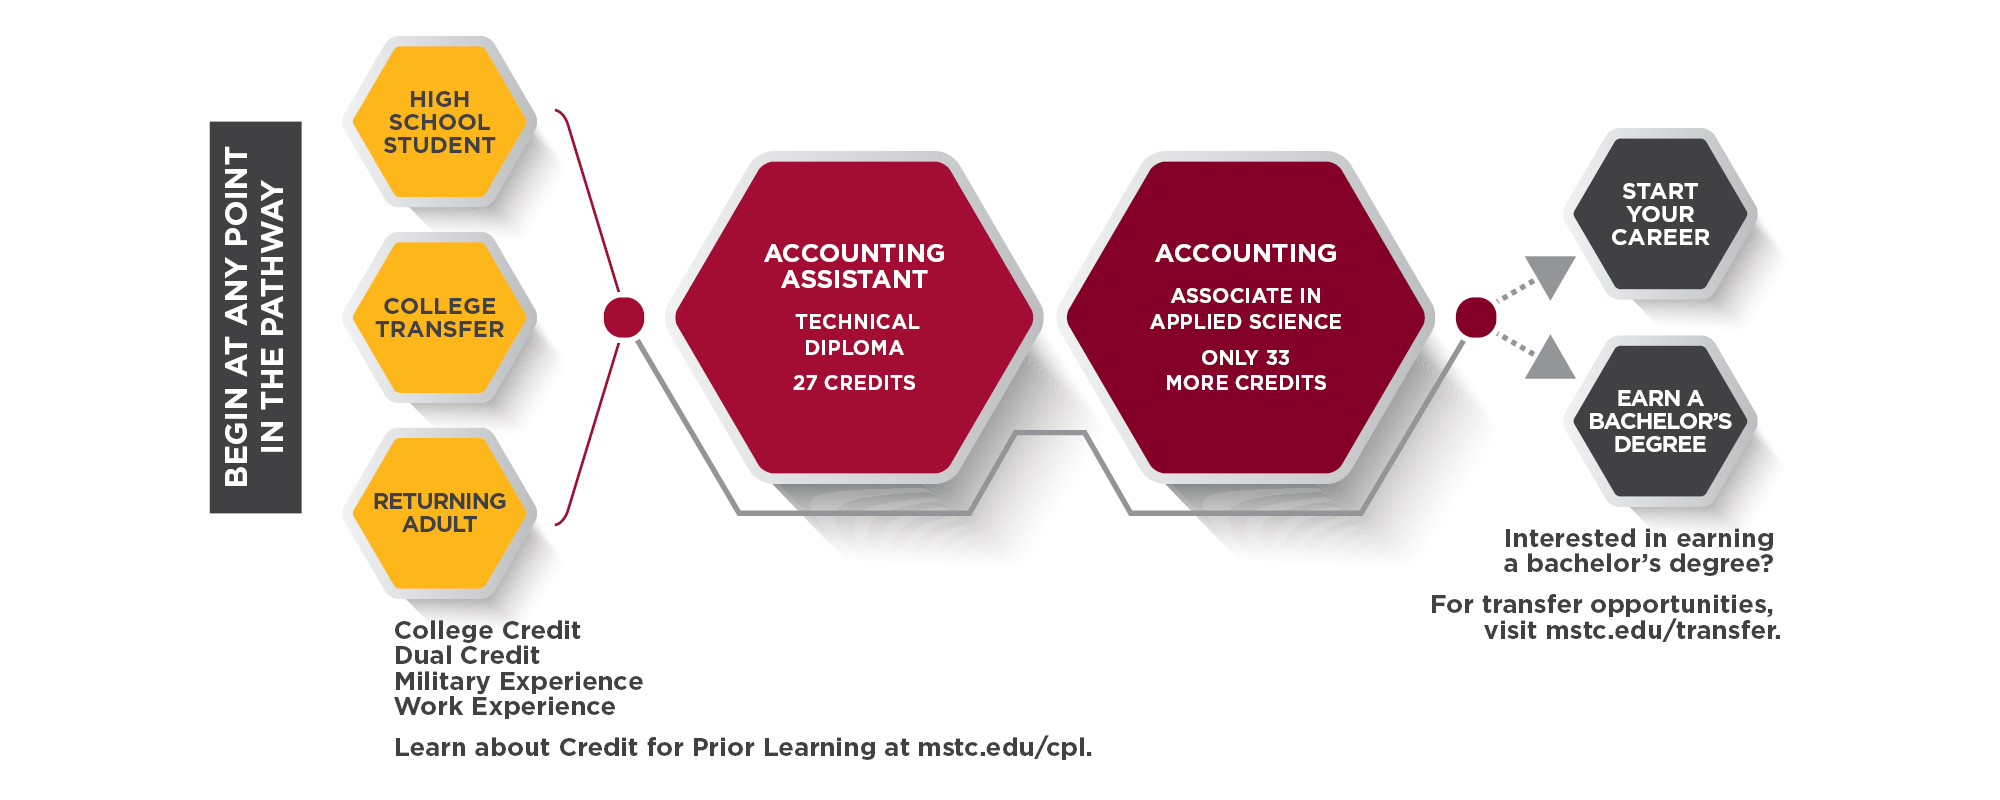 Accounting Assistant Pathway